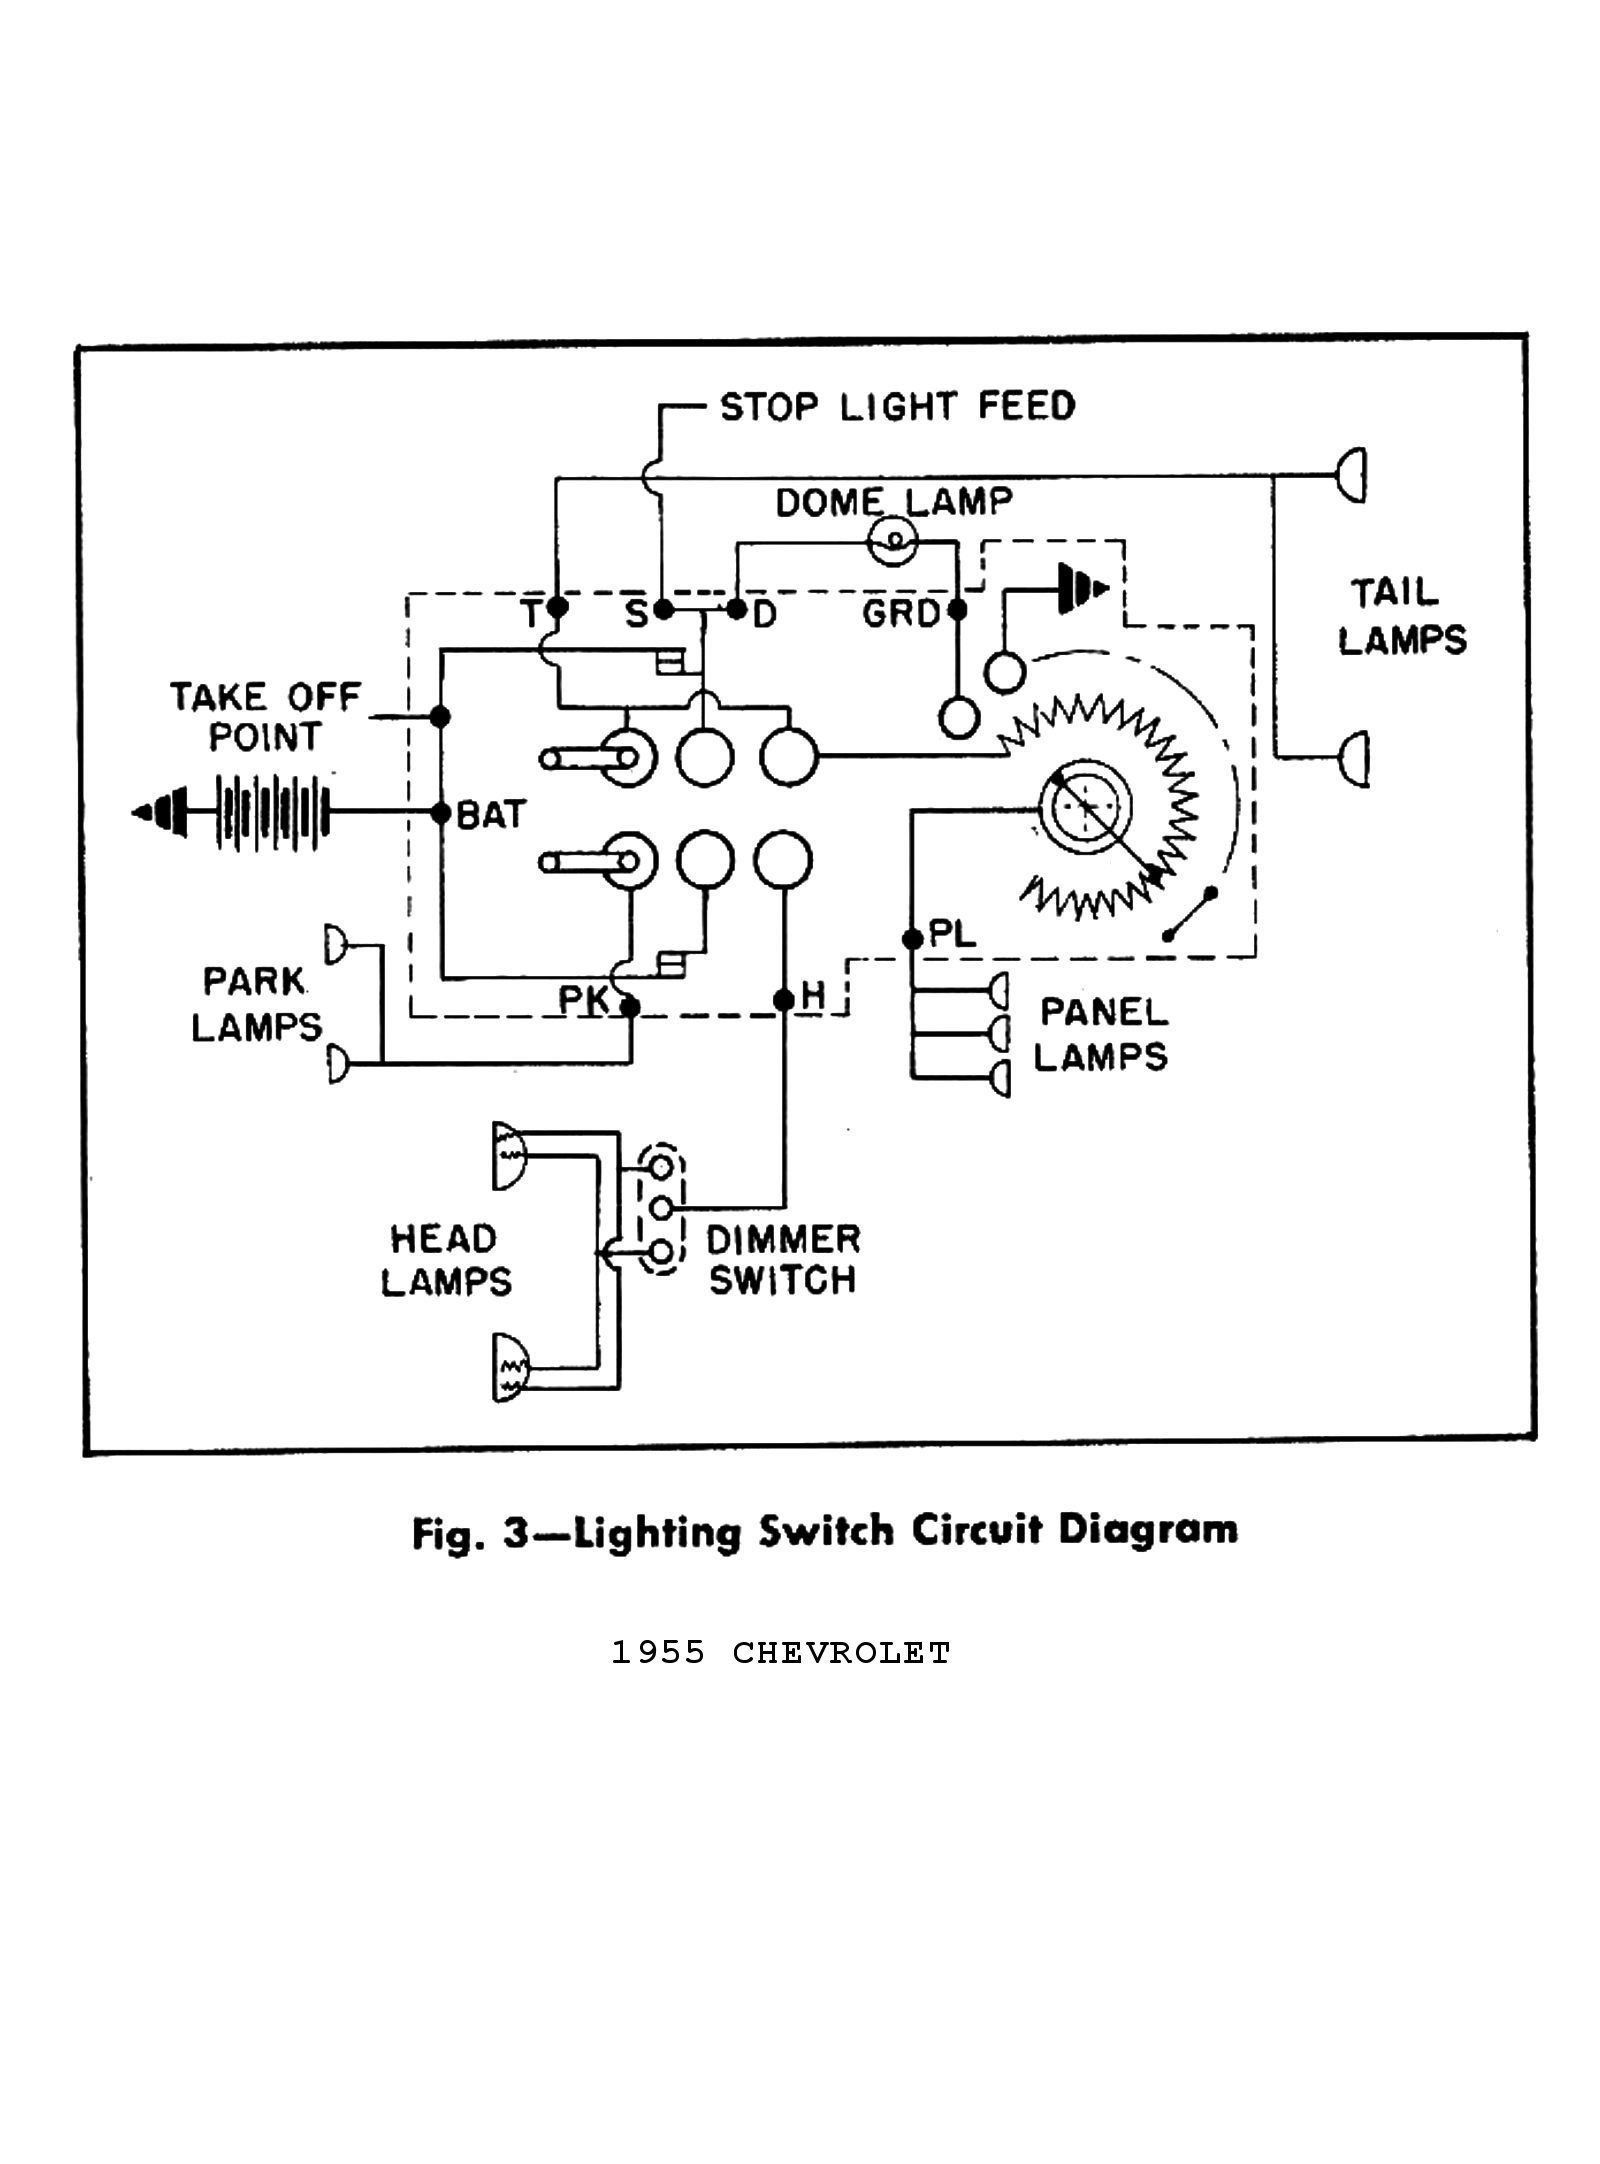 50 Wiring Diagram For Light Switch Wisconsin In 2021 Light Switch Wiring Electrical Switch Wiring Diagram